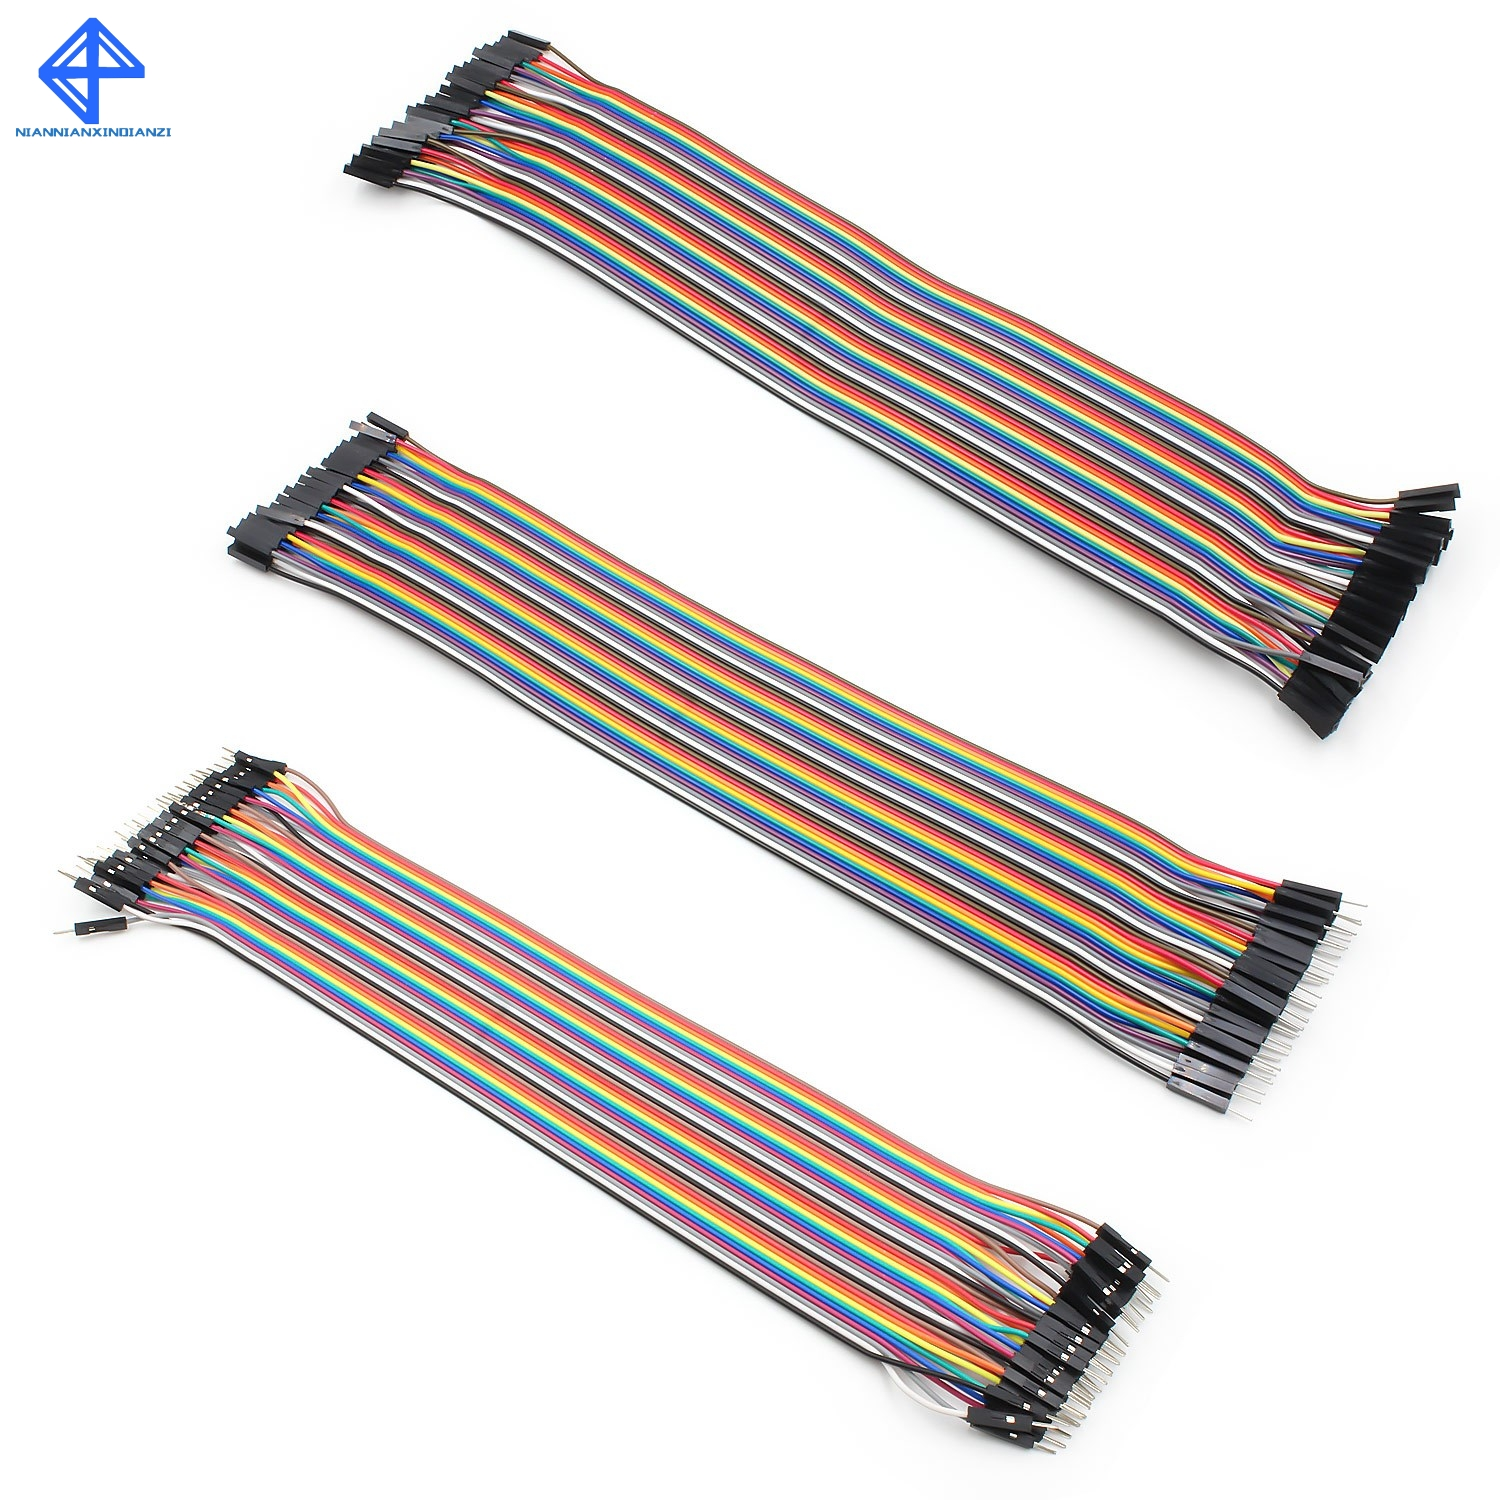 Dupont line 120pcs 20cm male to male + male to female and female to female jumper wire Dupont cable for Arduino 50cm 4p double headed dupont line male to male 4pin revolution color connecting line